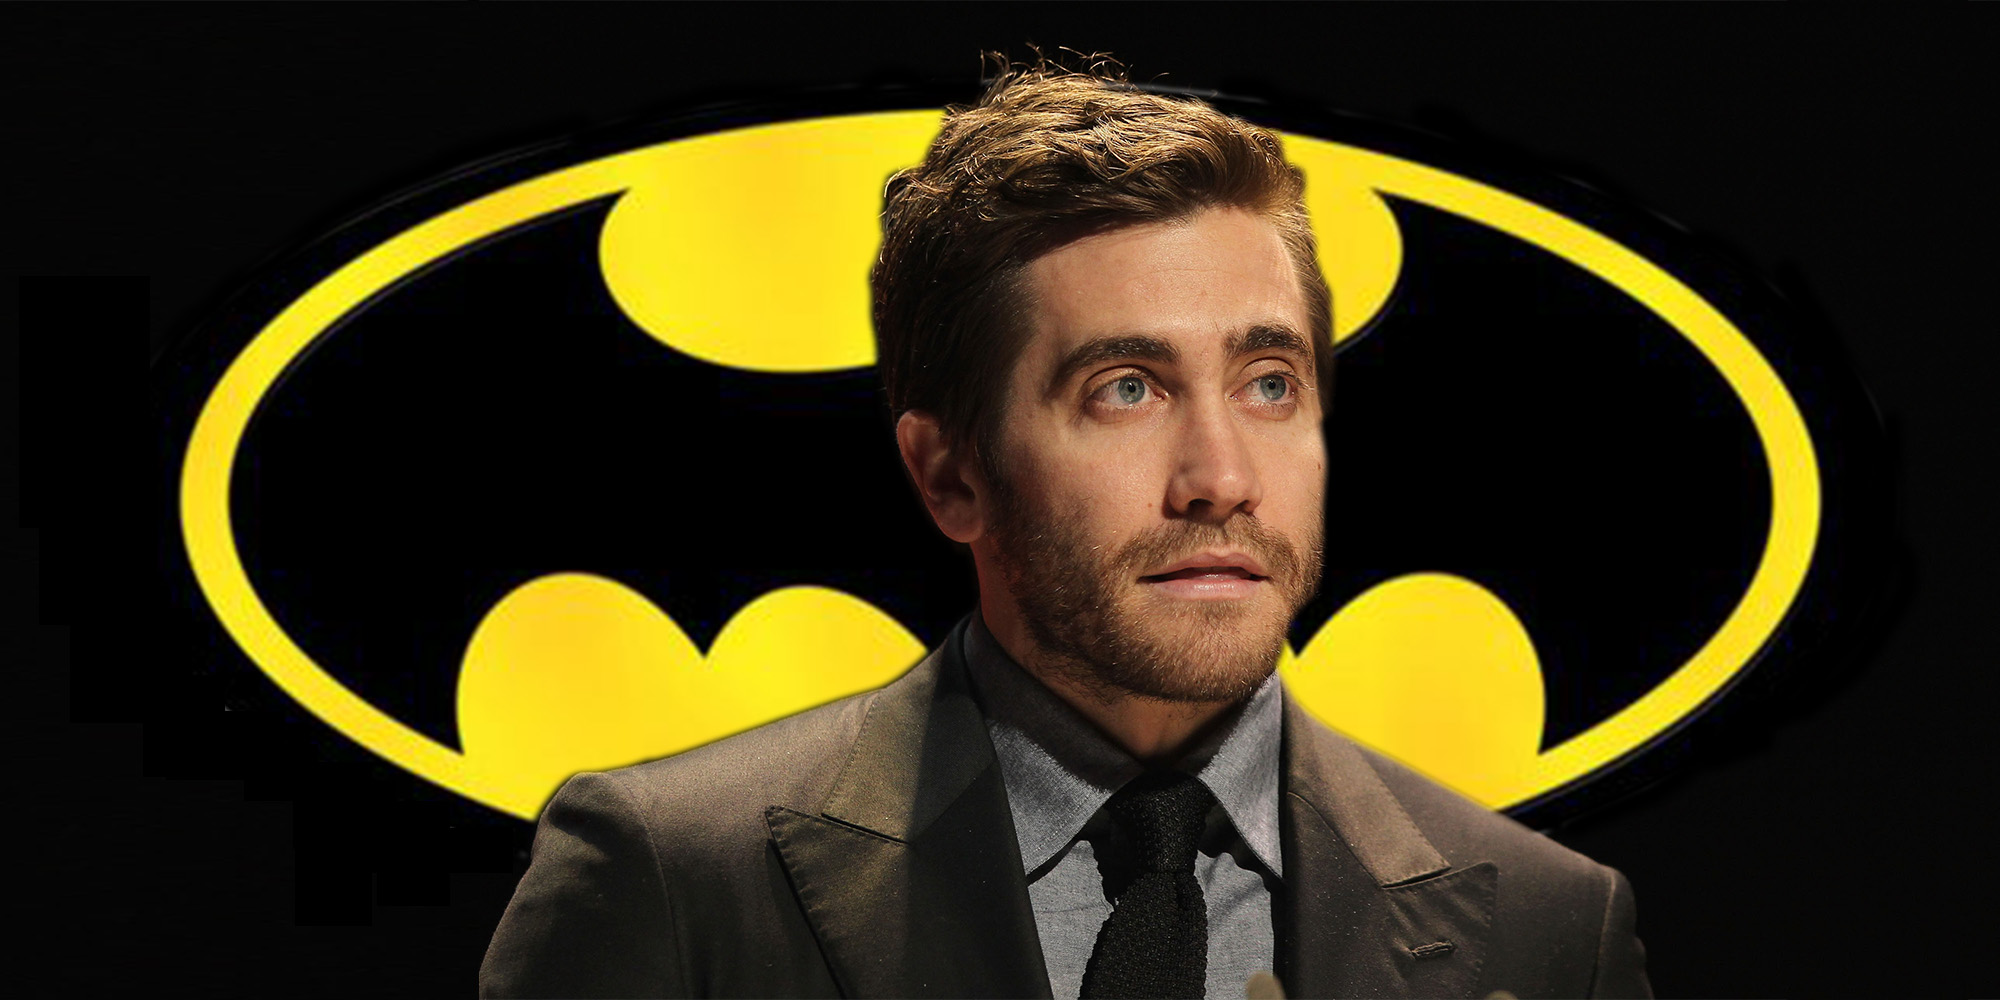 Rumors Are Swirling That Jake Gyllenhaal Could Be the Next A-Lister to Pick Up the Batman Cowl